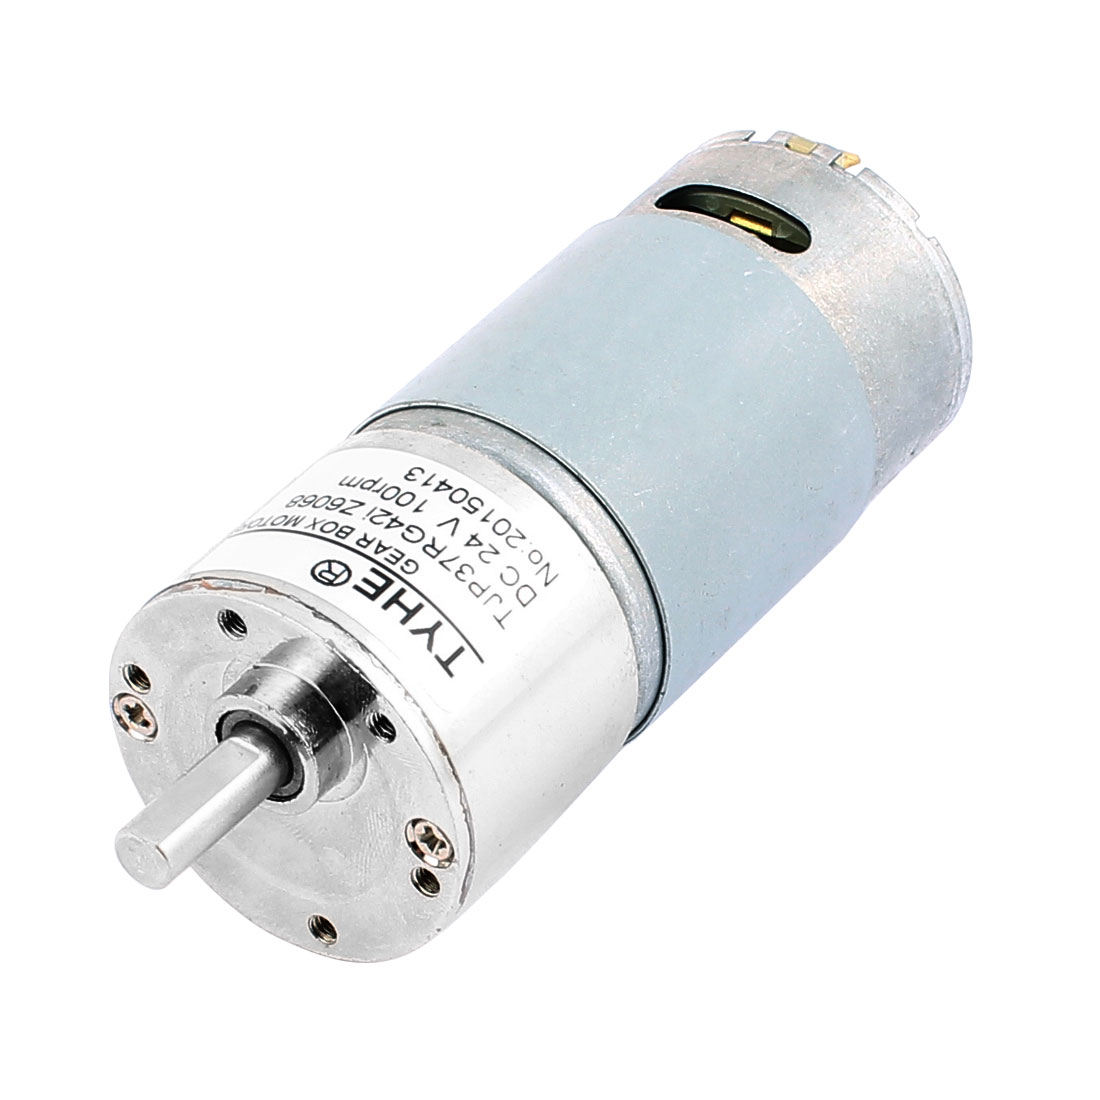 DC24V 100RPM 6mm Shaft Diameter Electric DC Geared Motor TJP37RG42i-Z6068